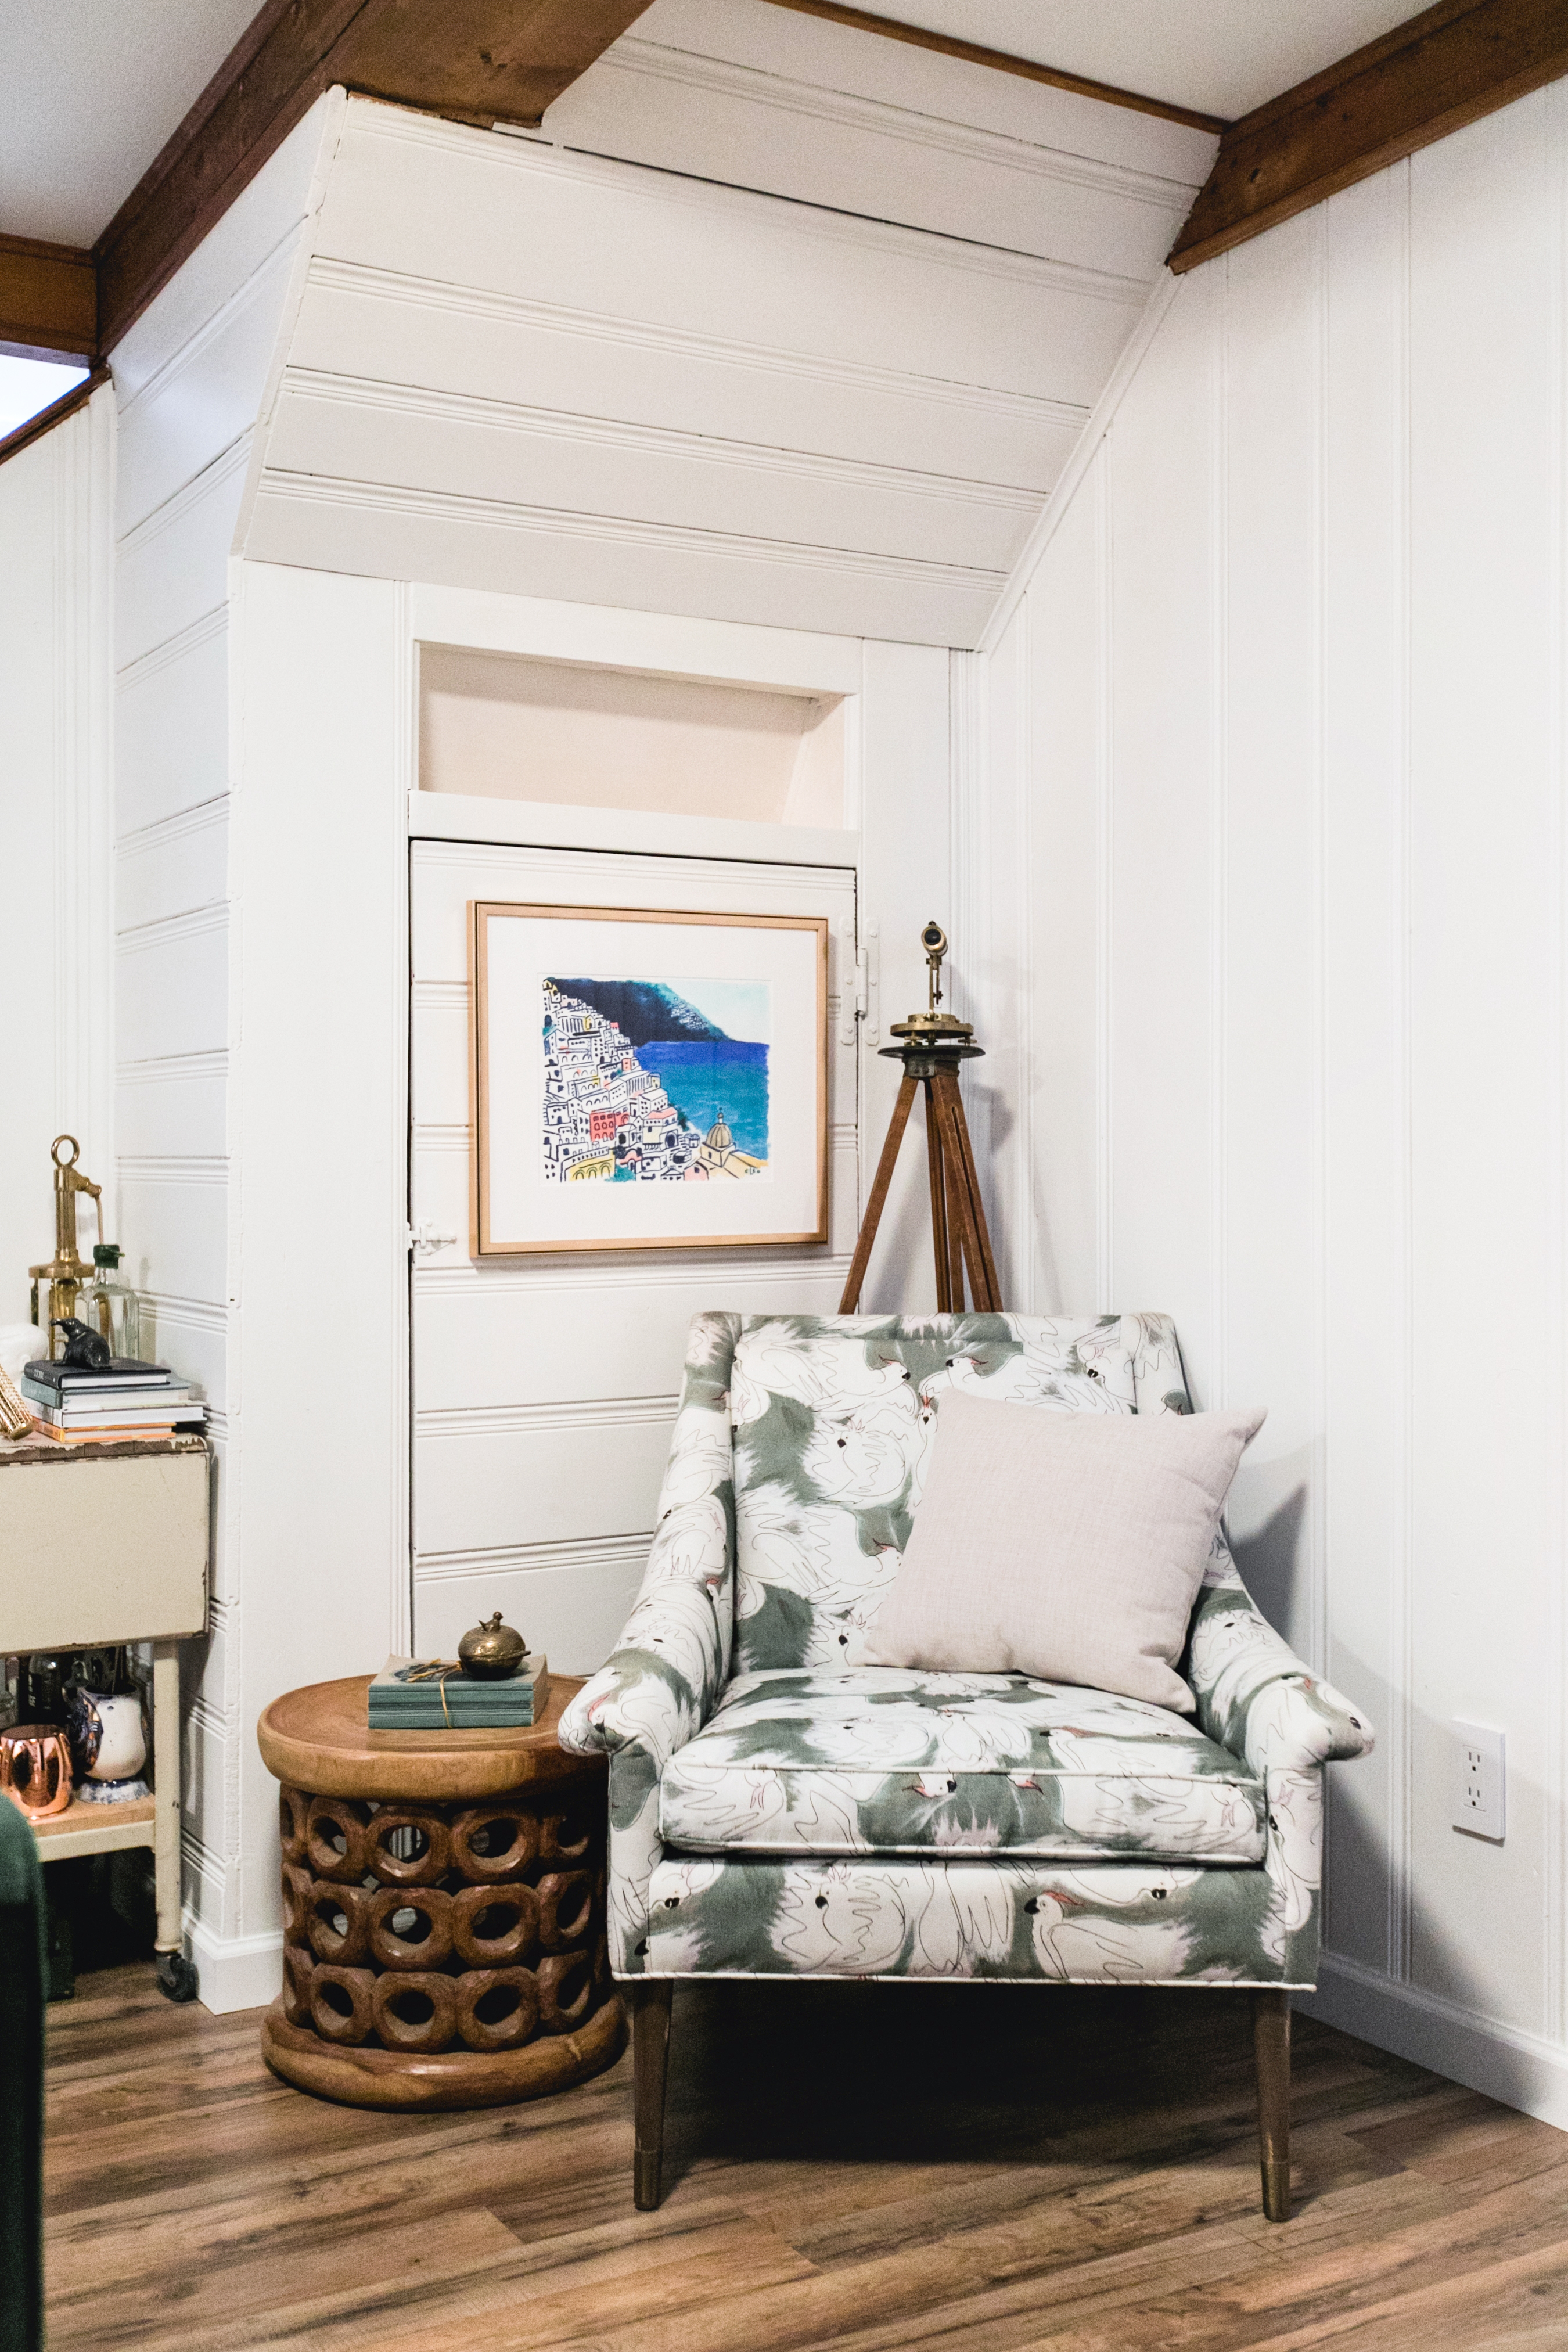 What is Shiplap - Photos, Design Ideas, Inspiration | Apartment Therapy